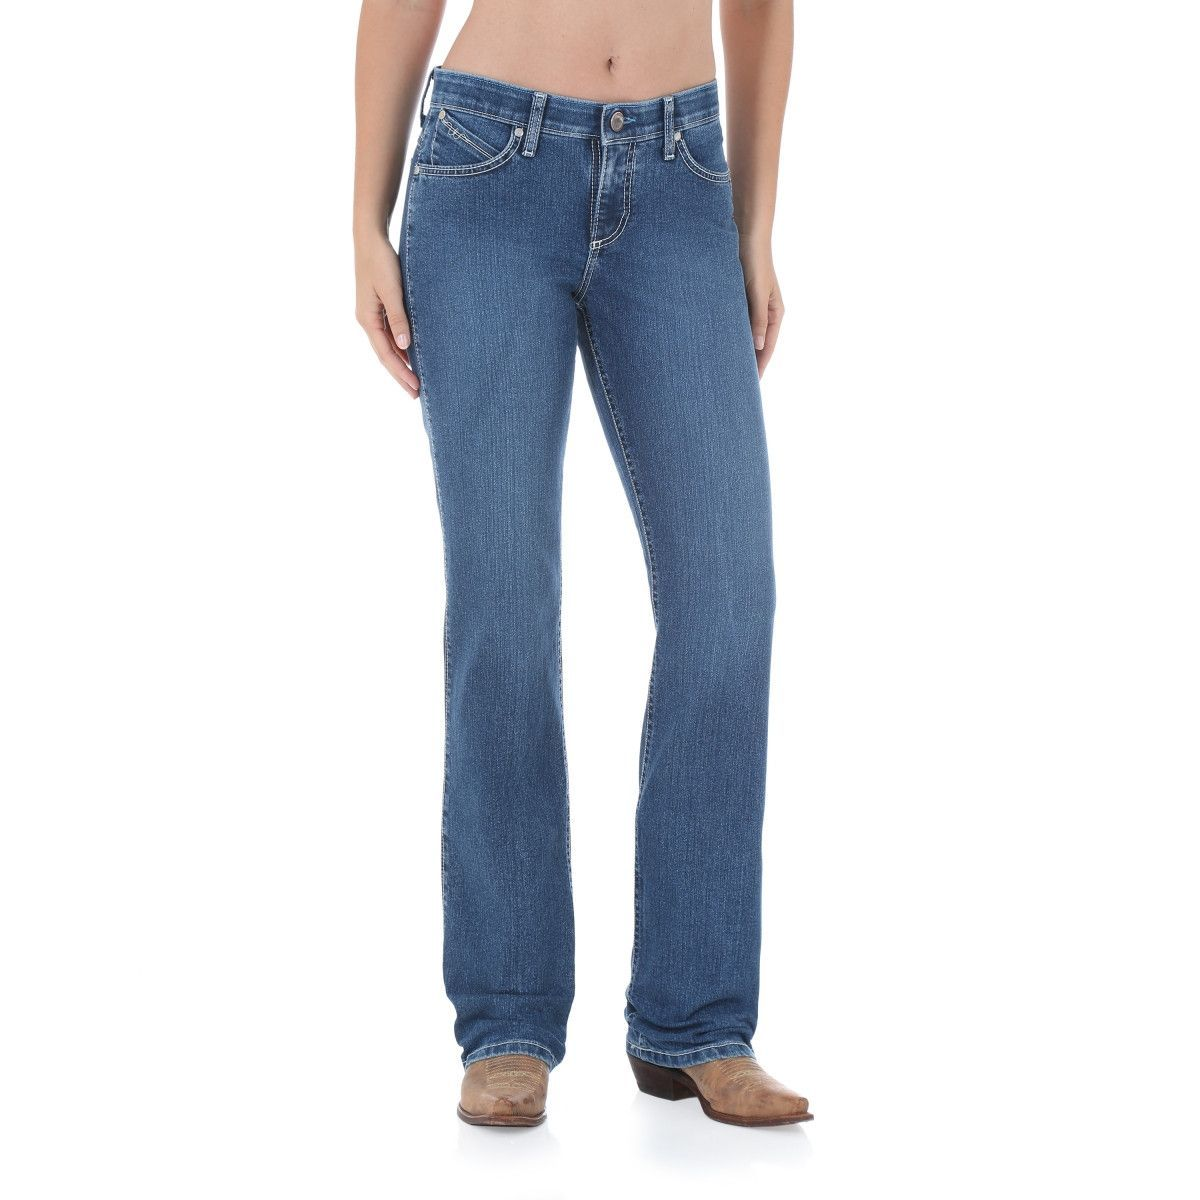 The Ultimate Riding® Jean With Cool Vantage - Q-Baby